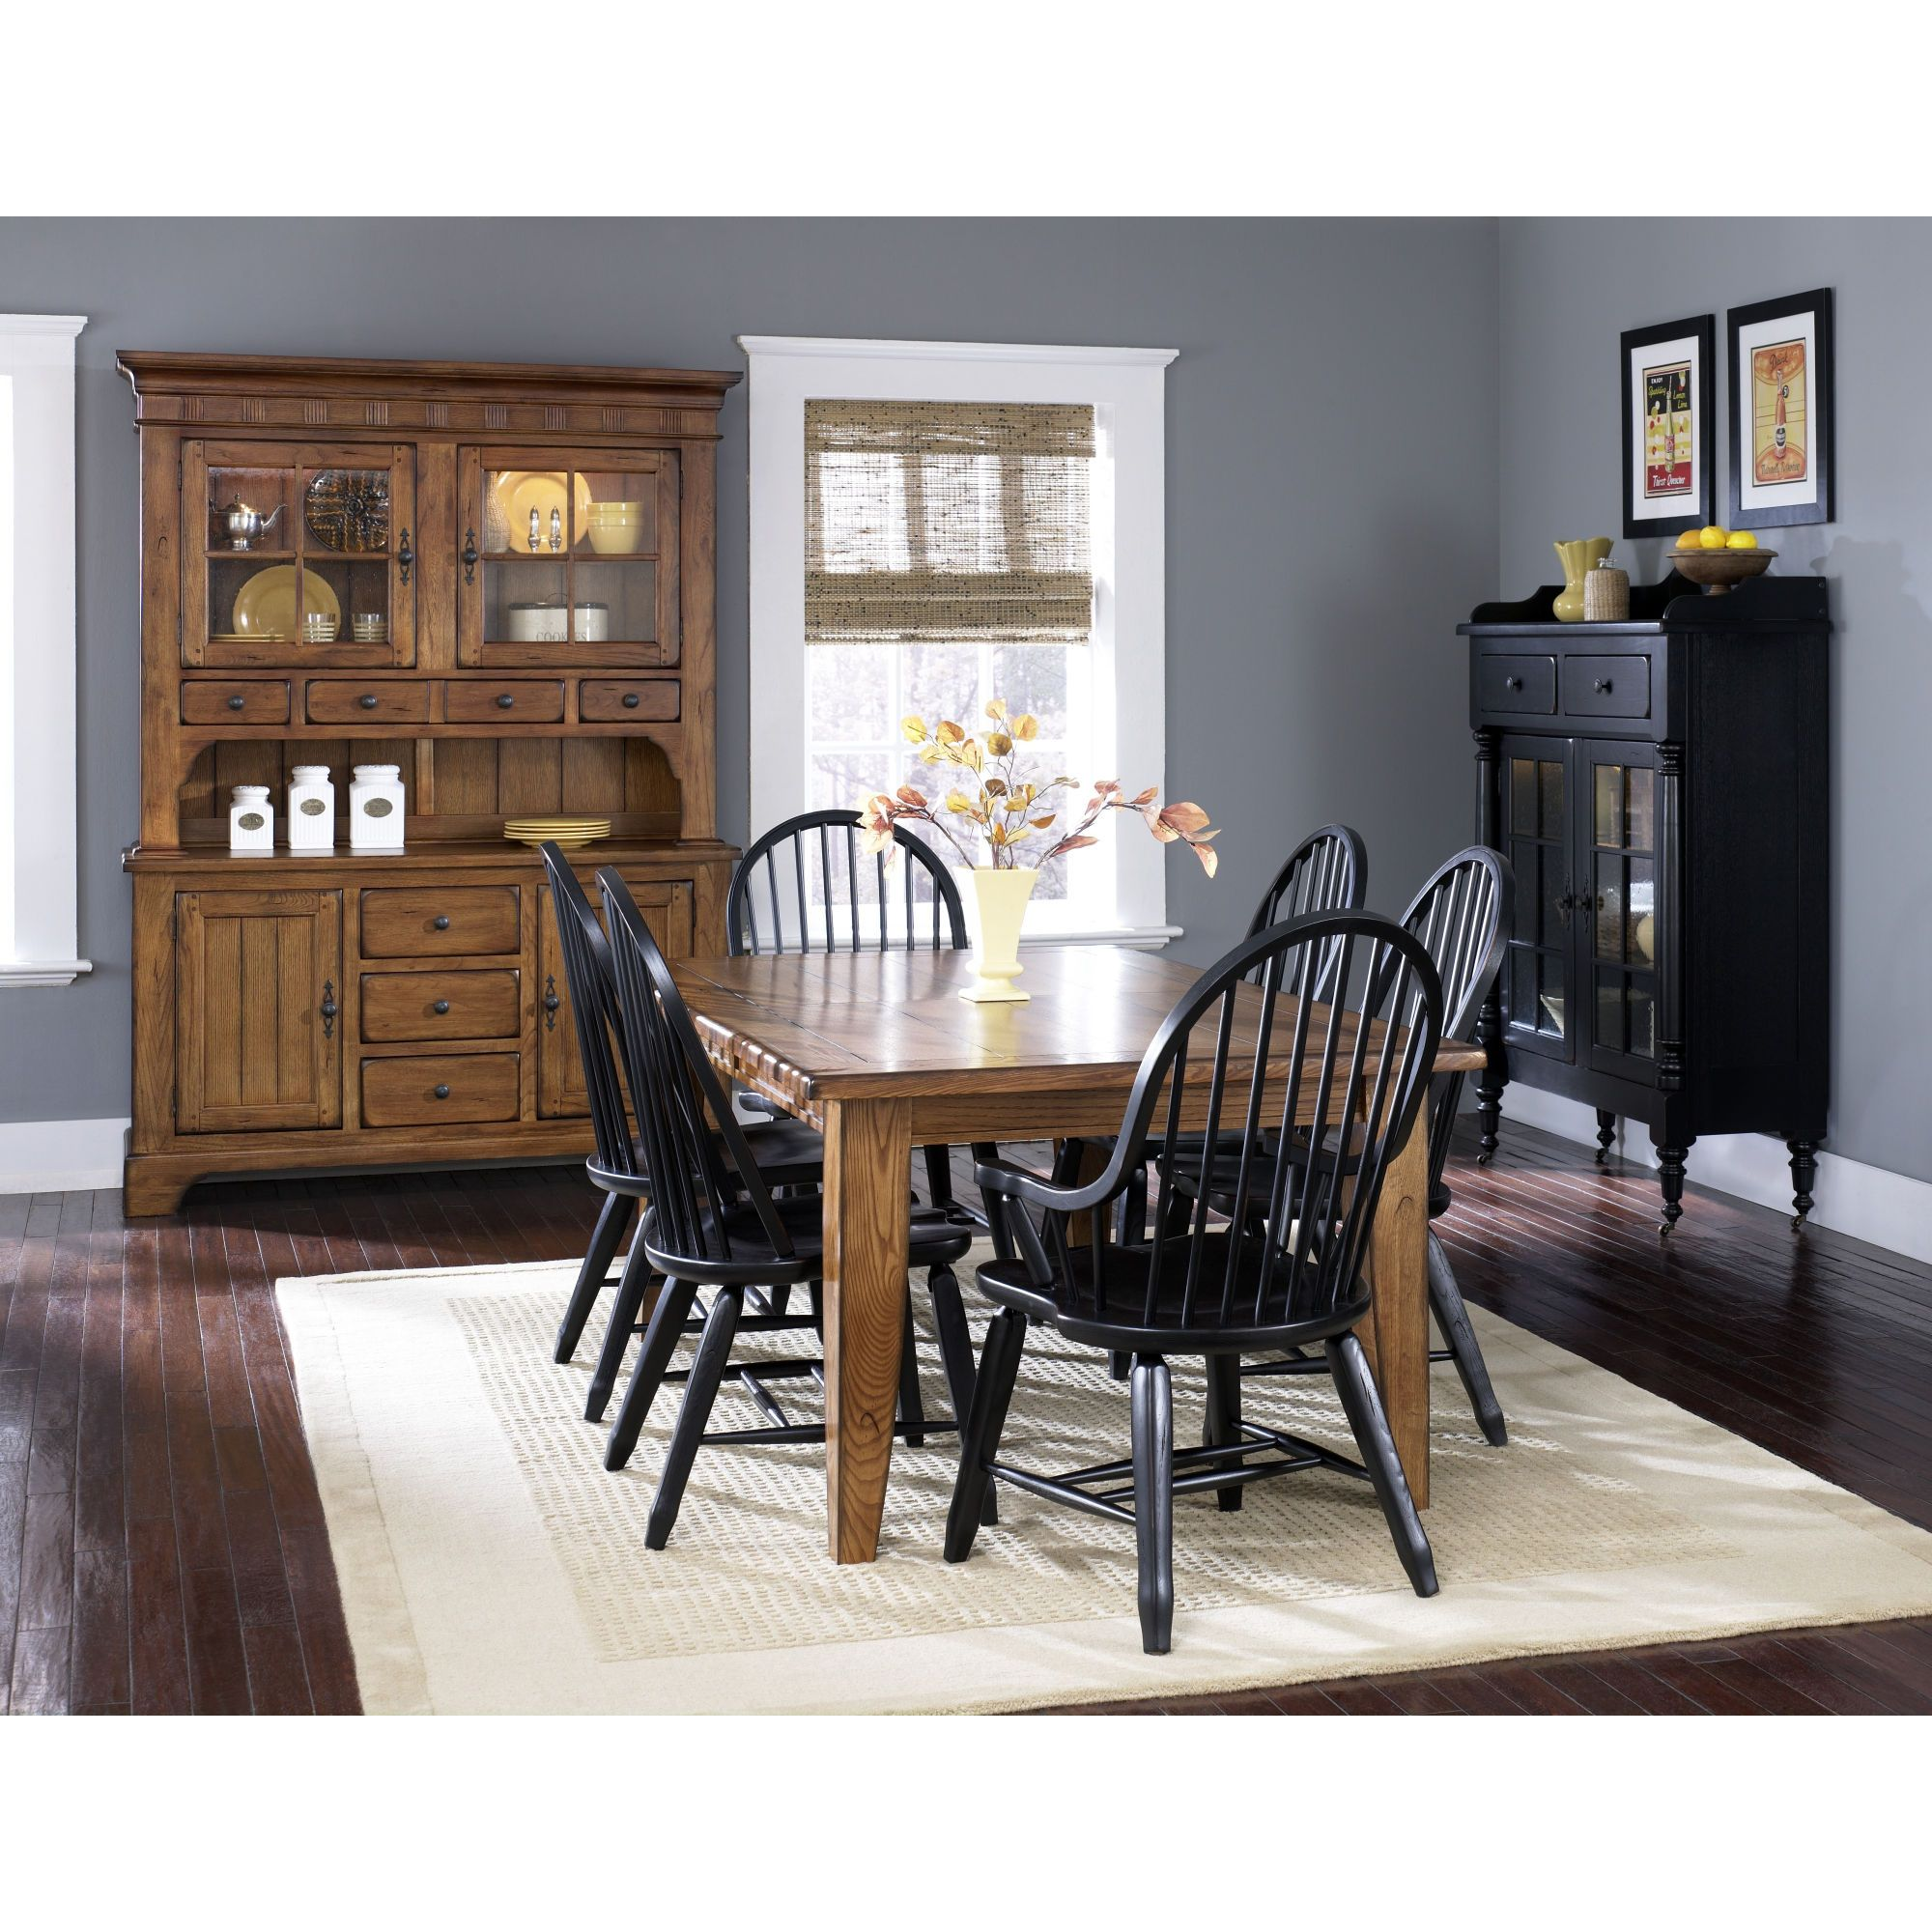 Best Long Dining Table Black Chairs Blue Gray Wall Color 400 x 300